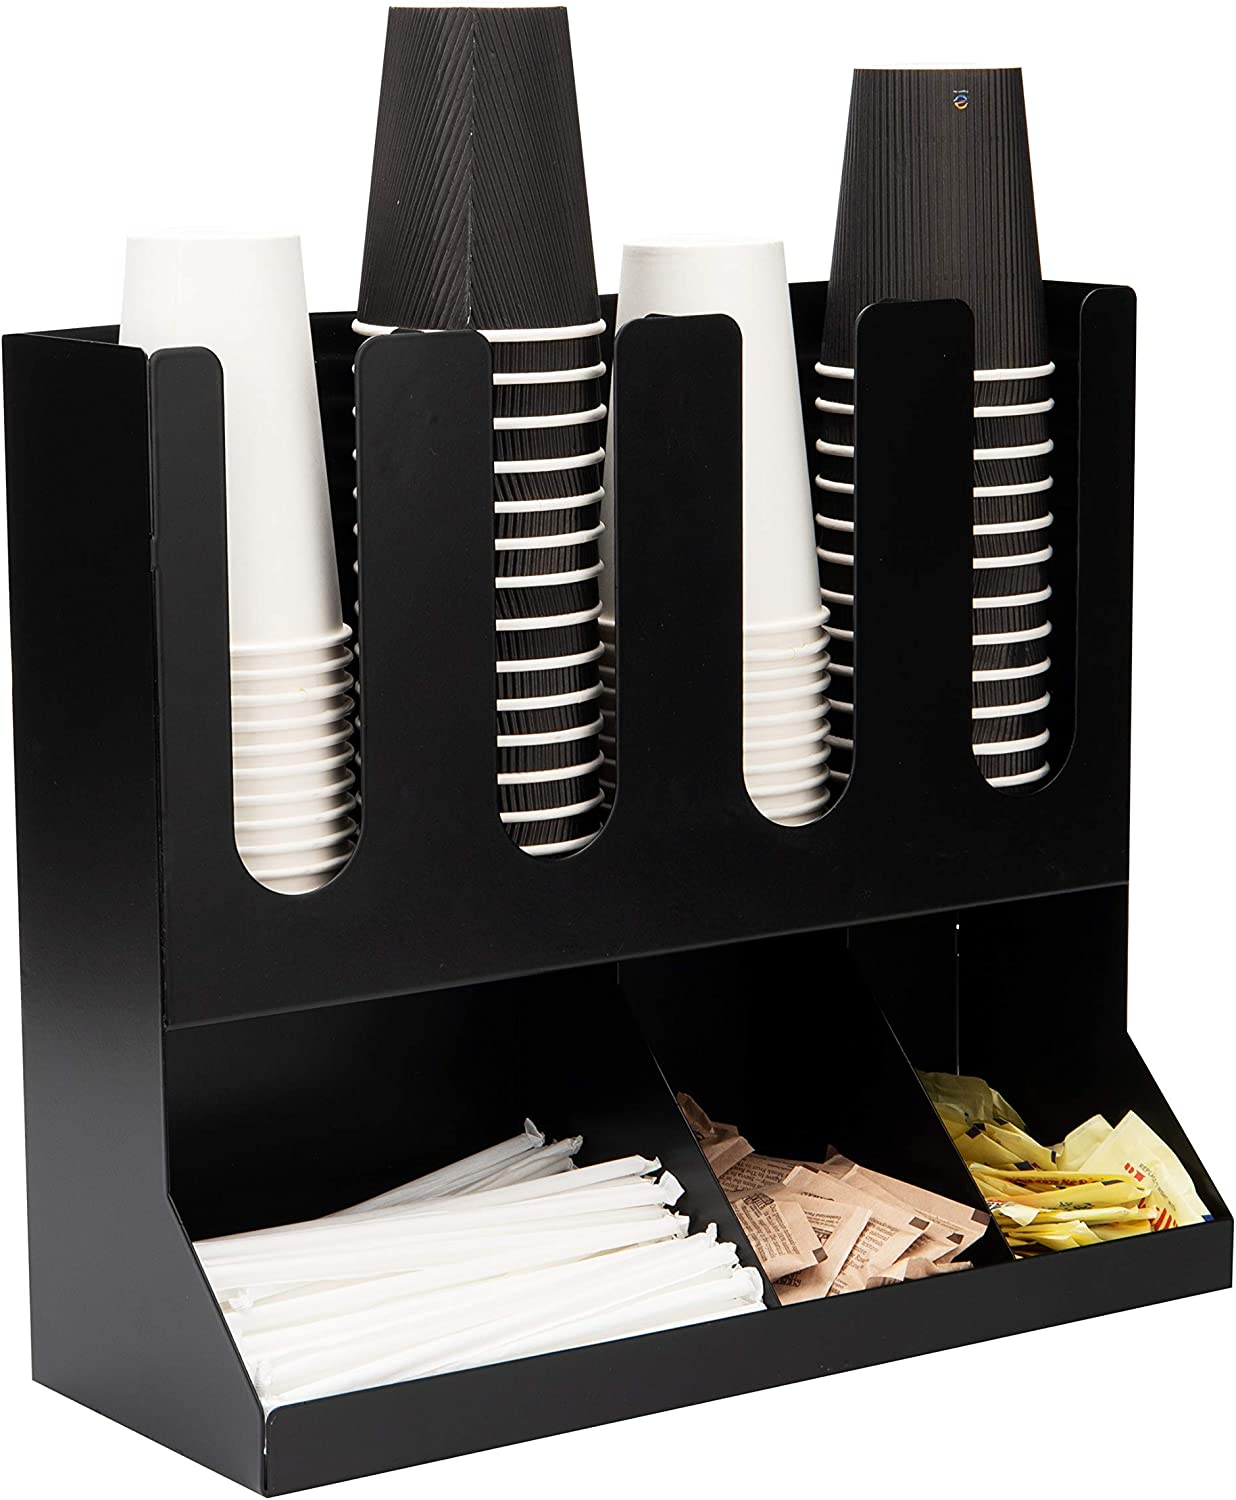 Mind Reader Upright Condiment Station 7 Section Countertop Organizer for Hot or Cold Disposable Cups, Sugar Packets, Straws, Utensils, Black Stainless Steel